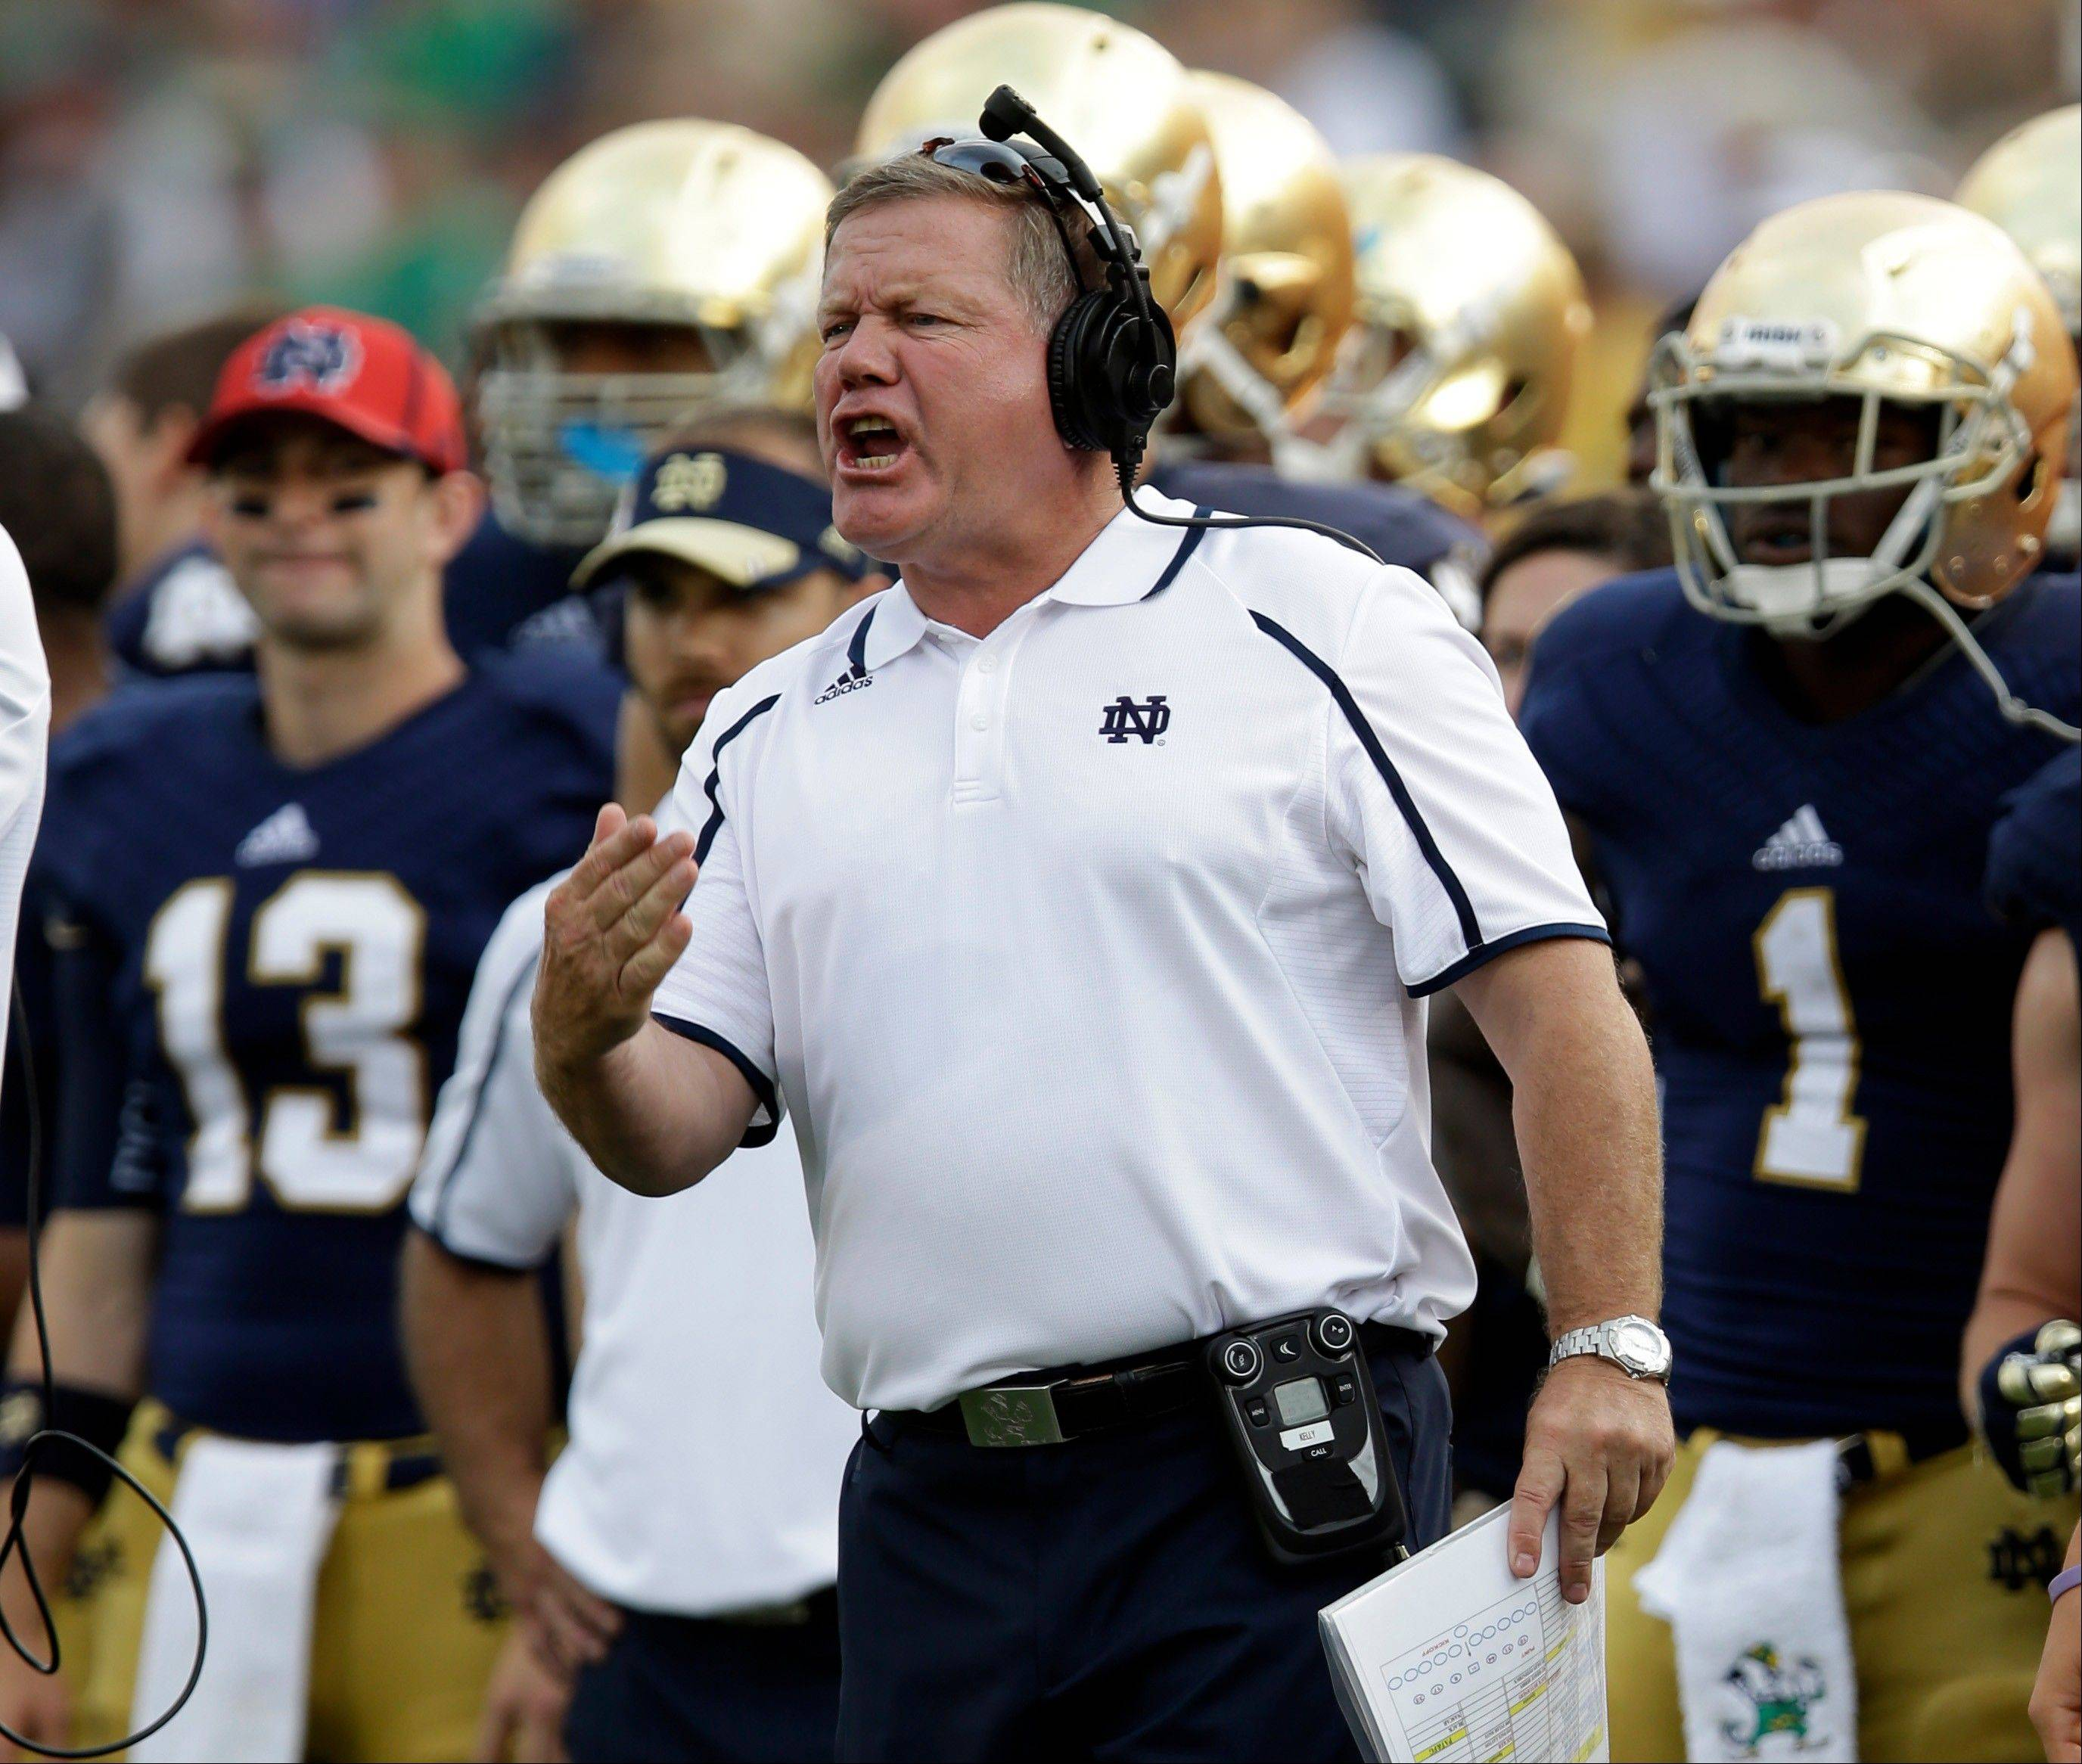 Notre Dame head coach Brian Kelly yells to his team Saturday during the second half against Temple in South Bend, Ind. Notre Dame defeated Temple 28-6.